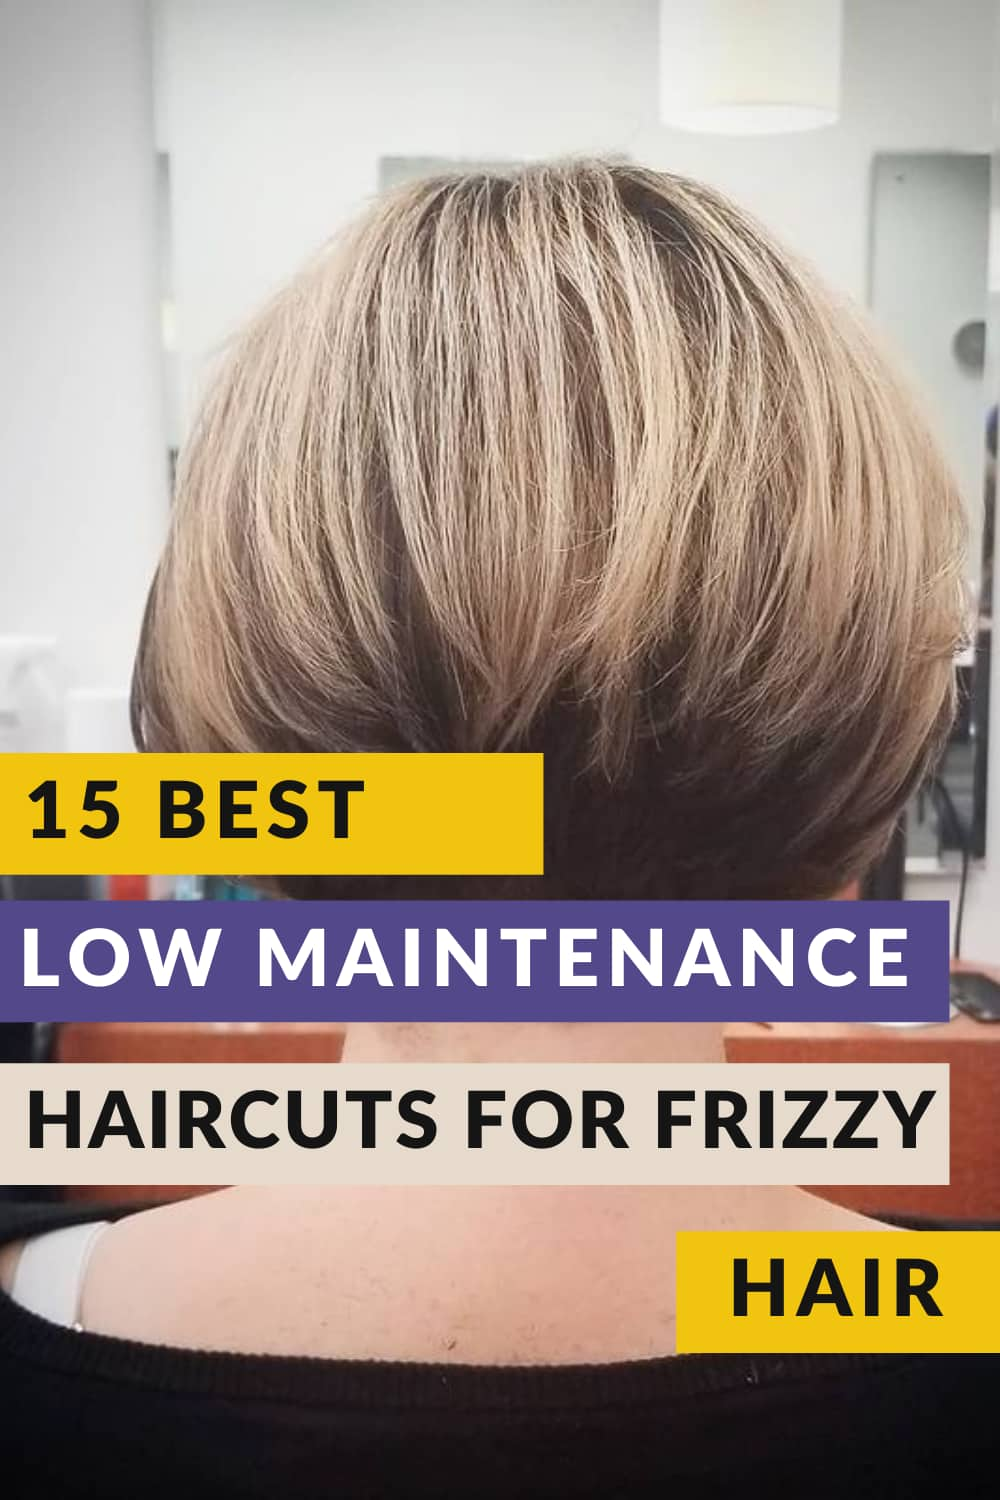 low maintenance haircut for frizzy hair